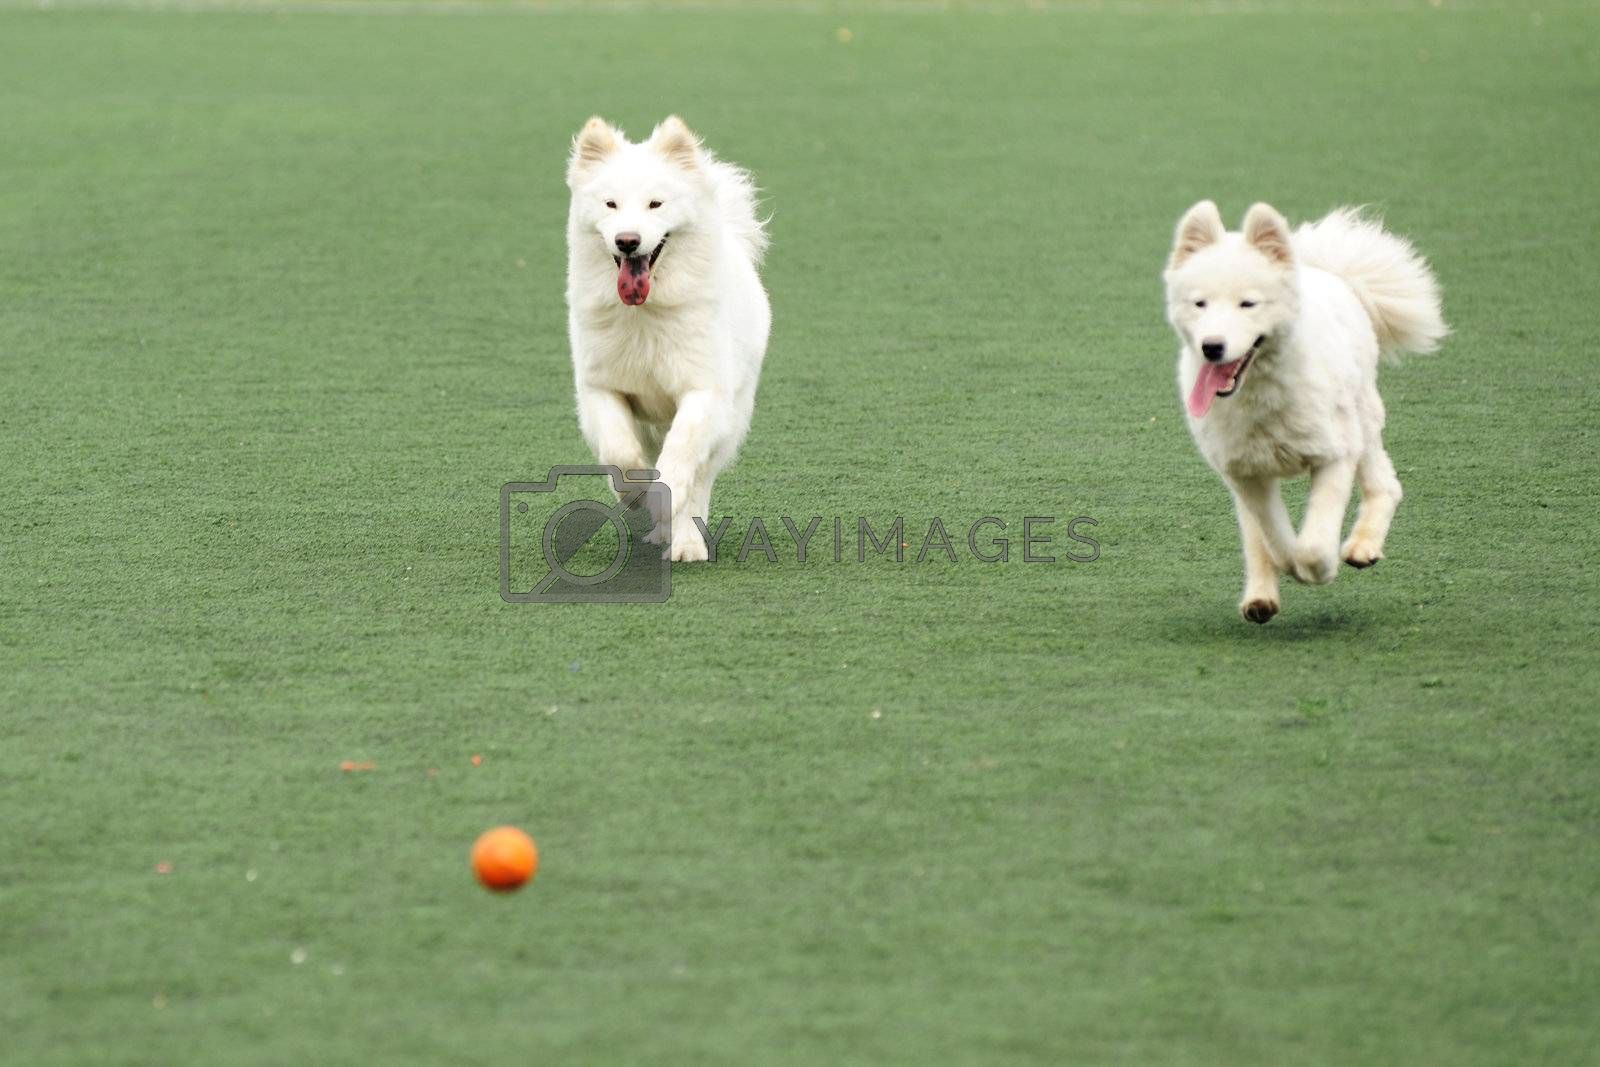 Two dogs running and chasing a ball on the playground